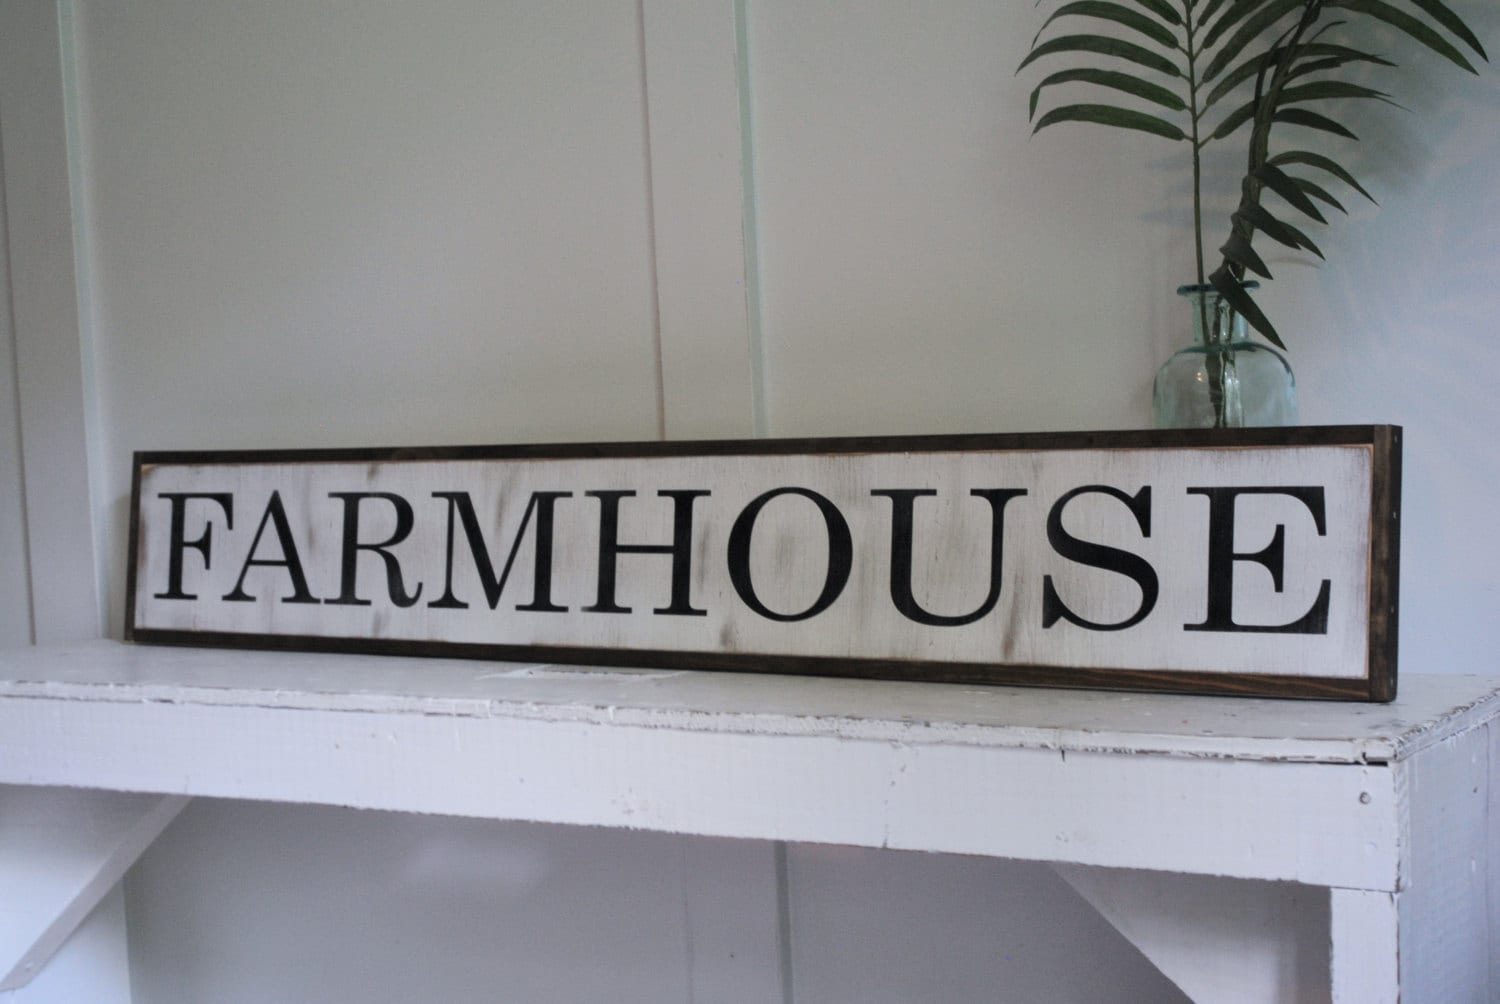 Farmhouse 7x48 sign distressed shabby chic wooden sign for Elegant farmhouse